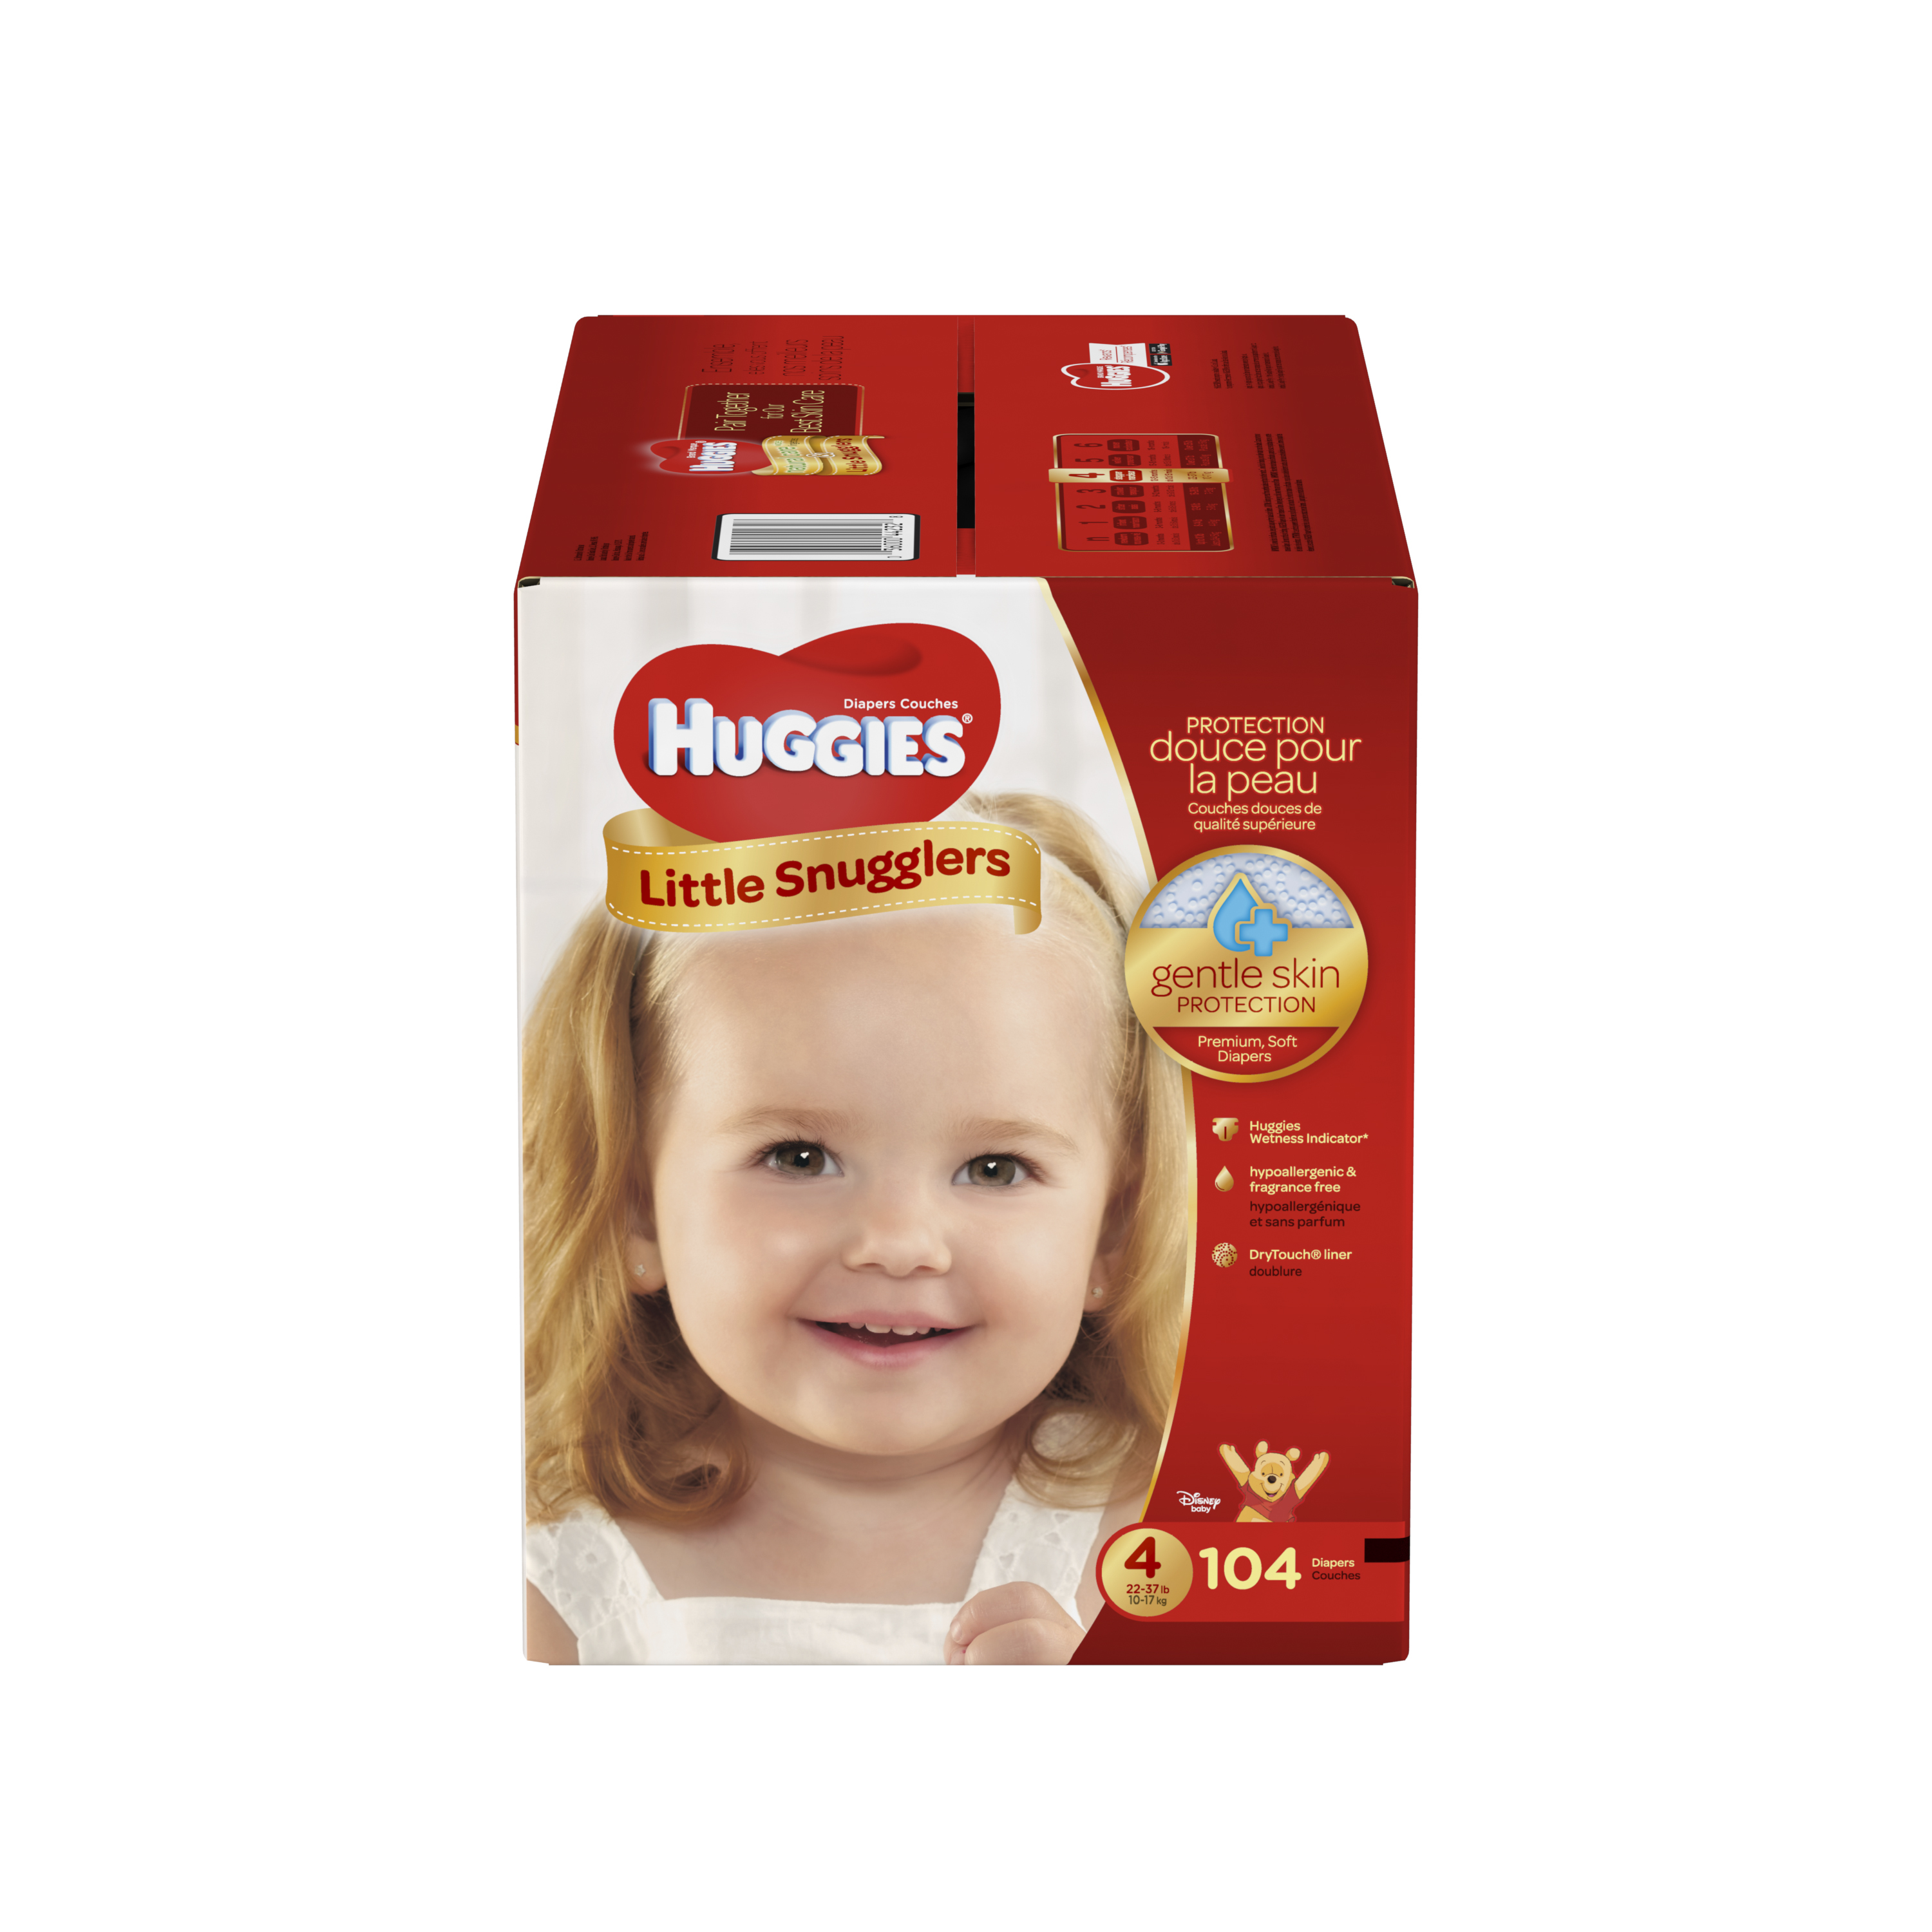 HUGGIES Little Snugglers Diapers, Size 4, 104 Diapers